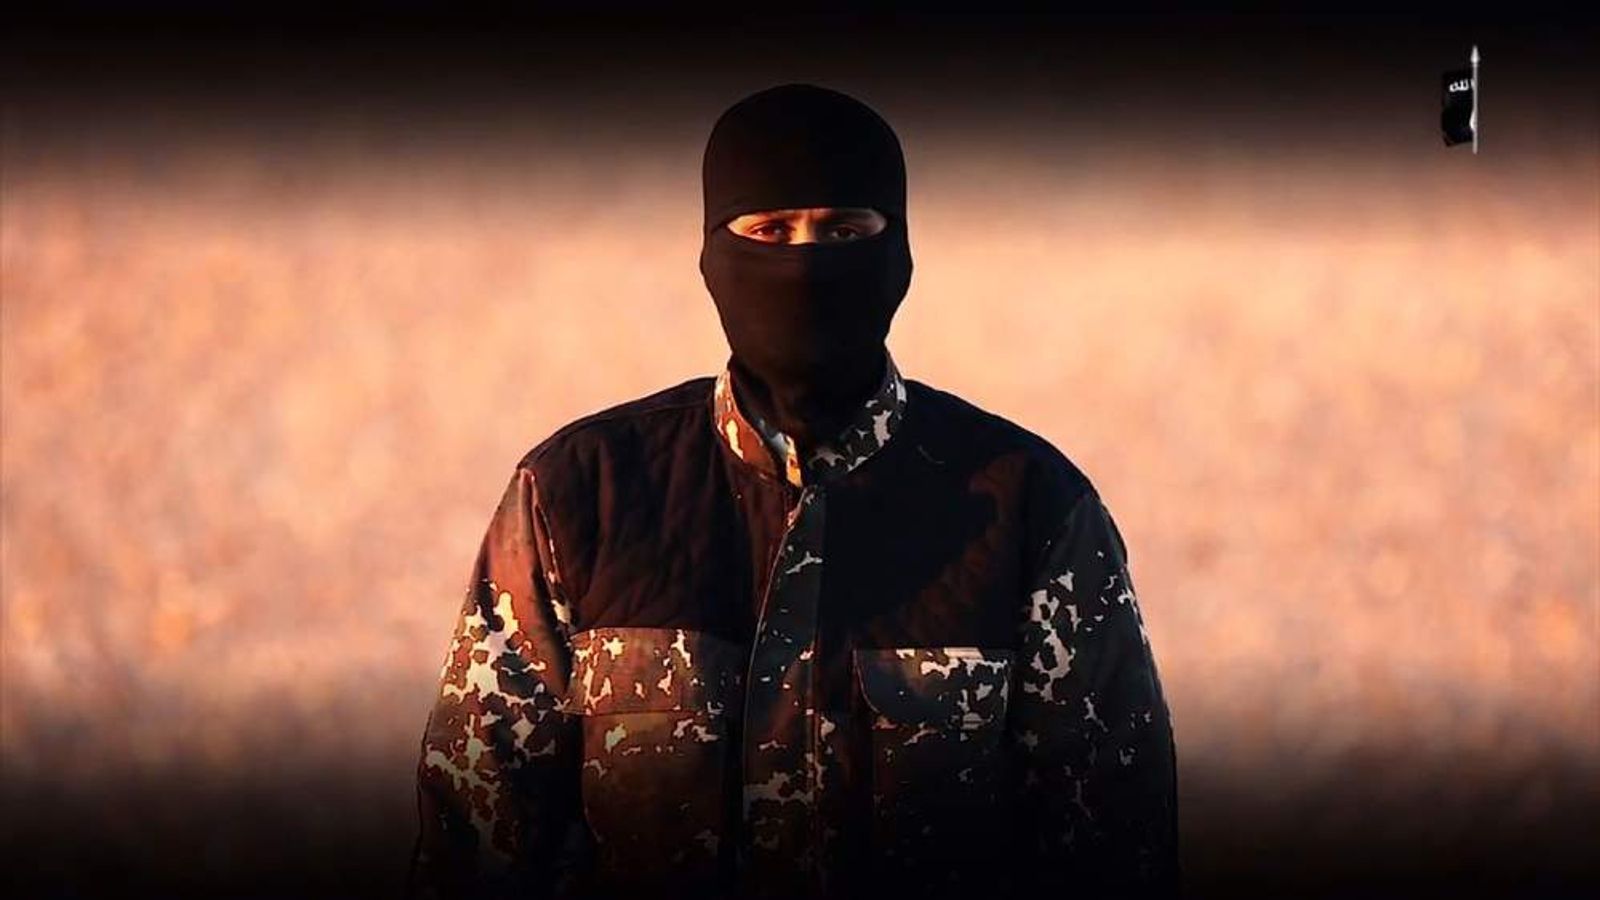 Apparent Islamic State militant in new video